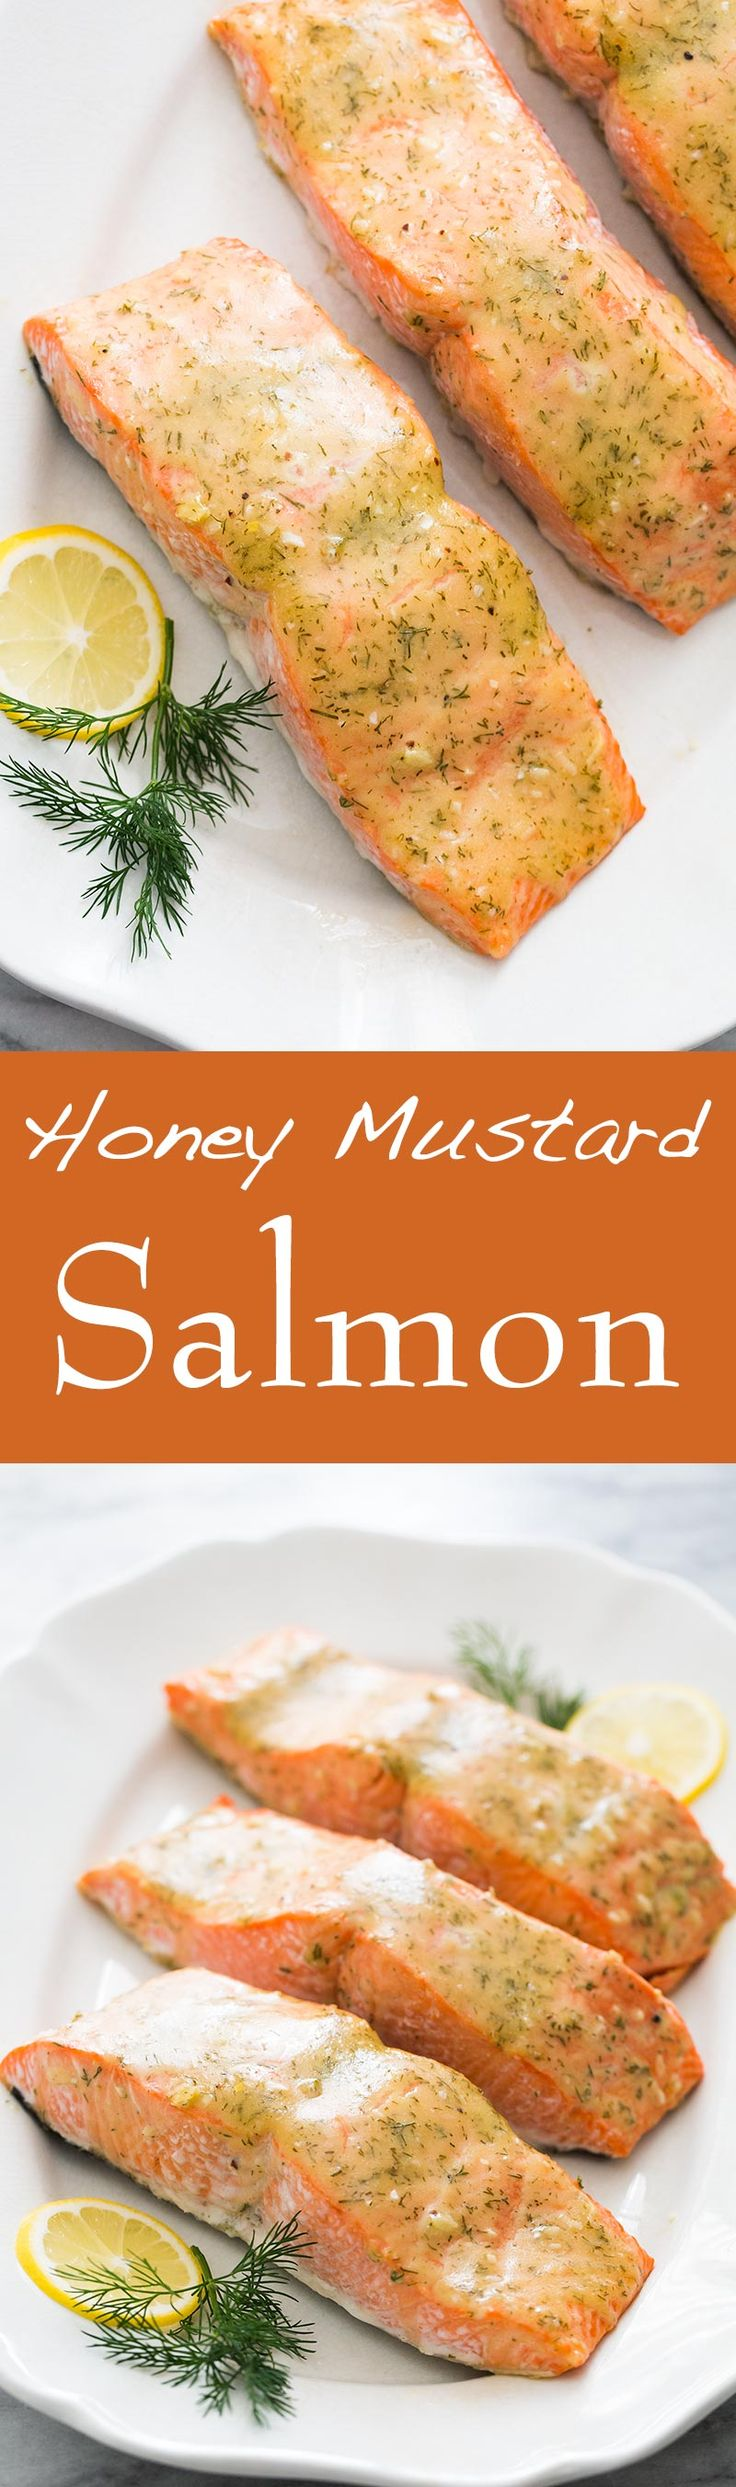 Honey Mustard Salmon, such a quick, EASY, delicious way to dress up salmon fillets! Takes only 20 minutes start to finish. On SimplyRecipes.com